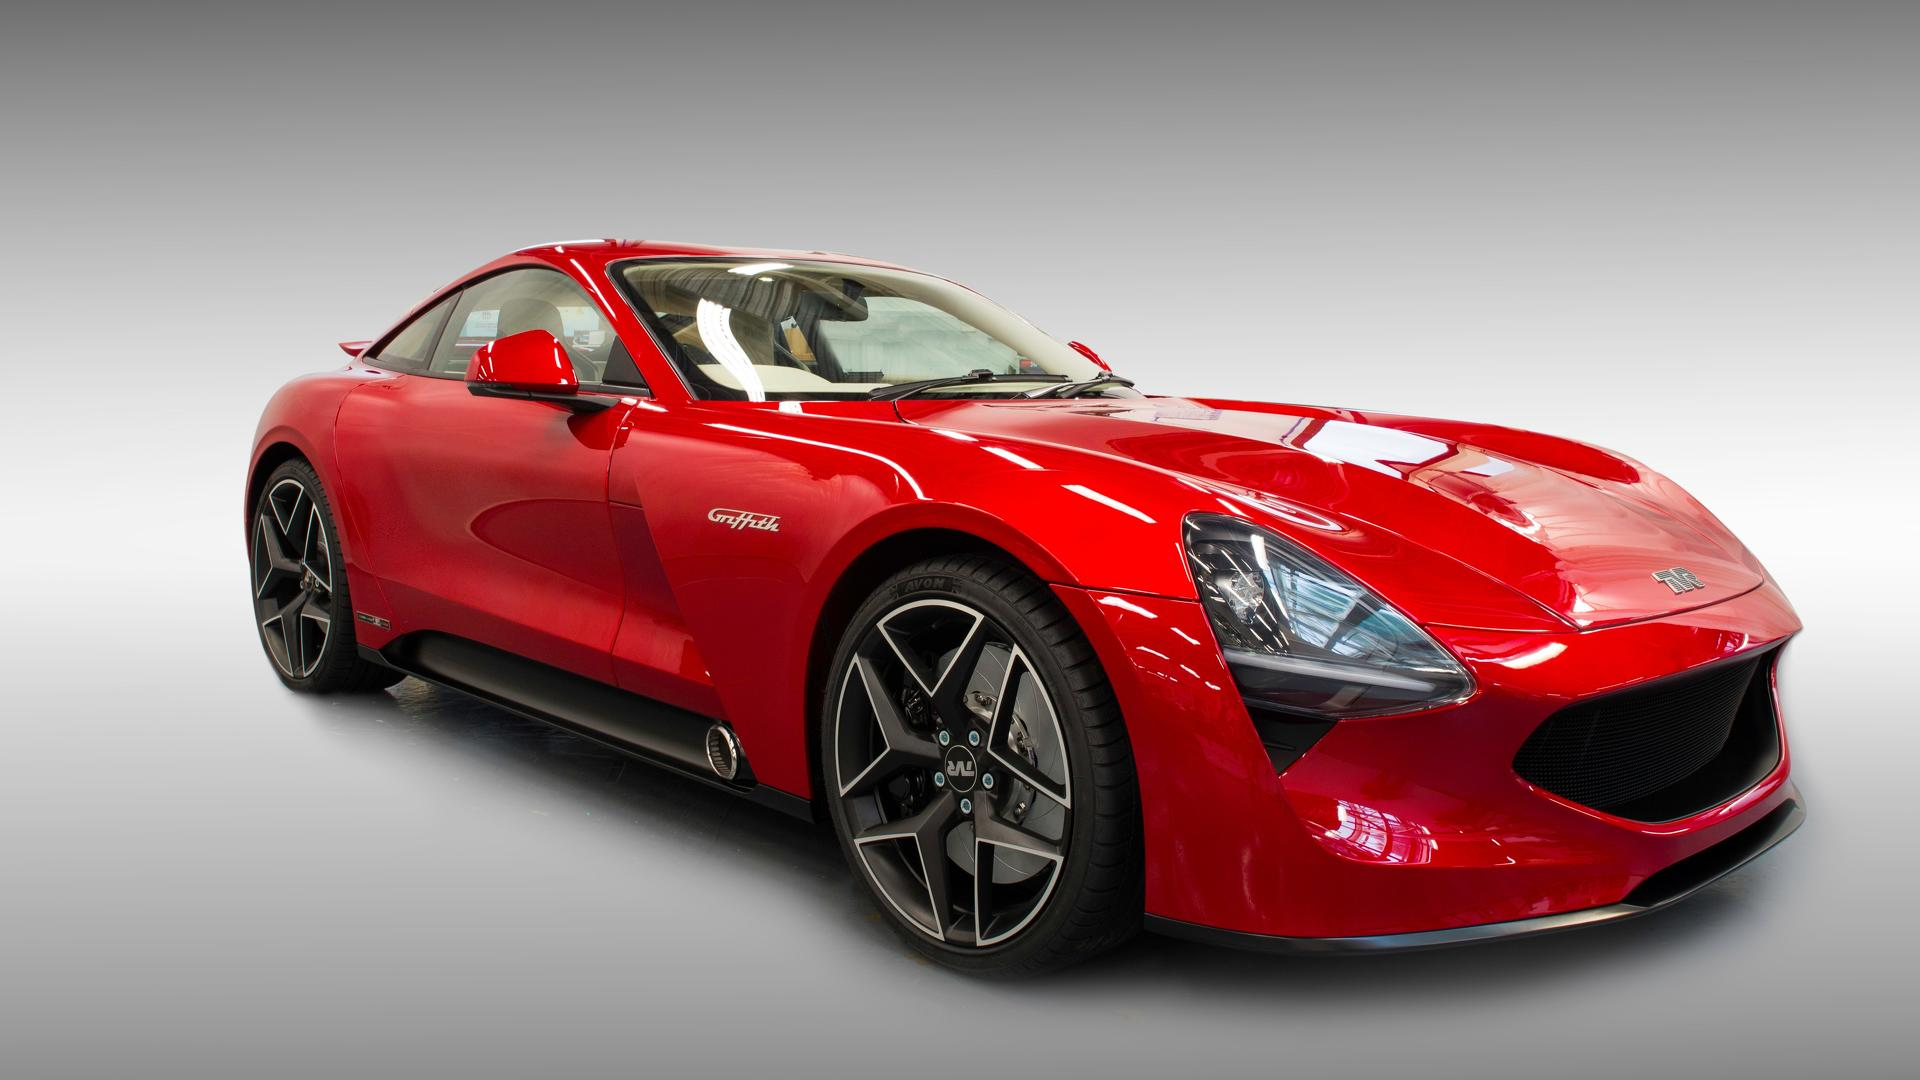 2018-tvr-griffith Amazing Tvr Griffith Left Hand Drive Cars Trend